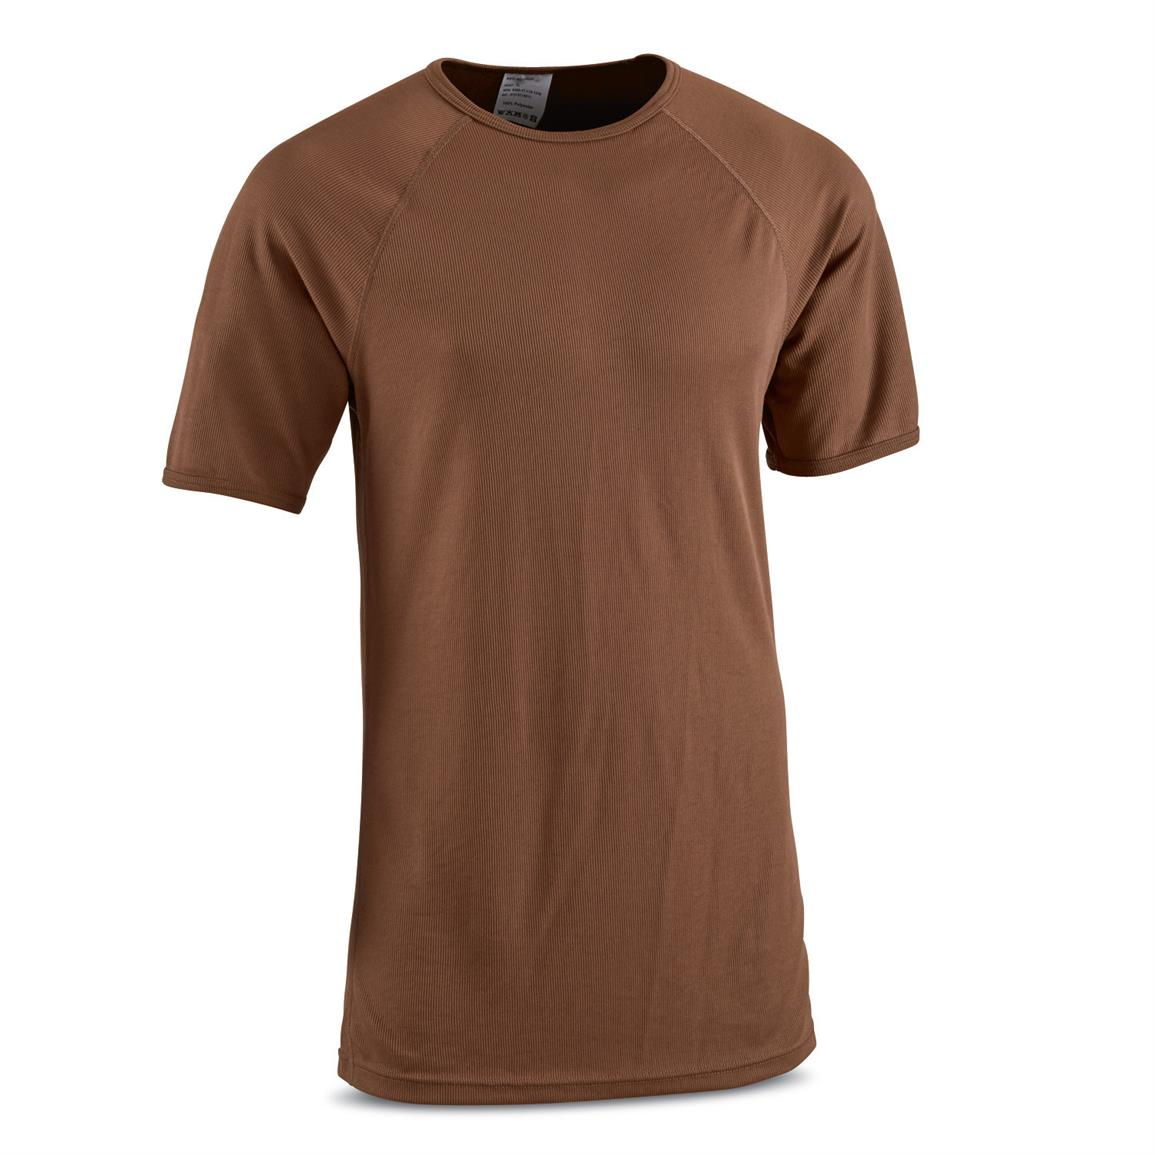 Dutch Military Issue Moisture-Wicking T-Shirts, 2 Pack, New, Brown